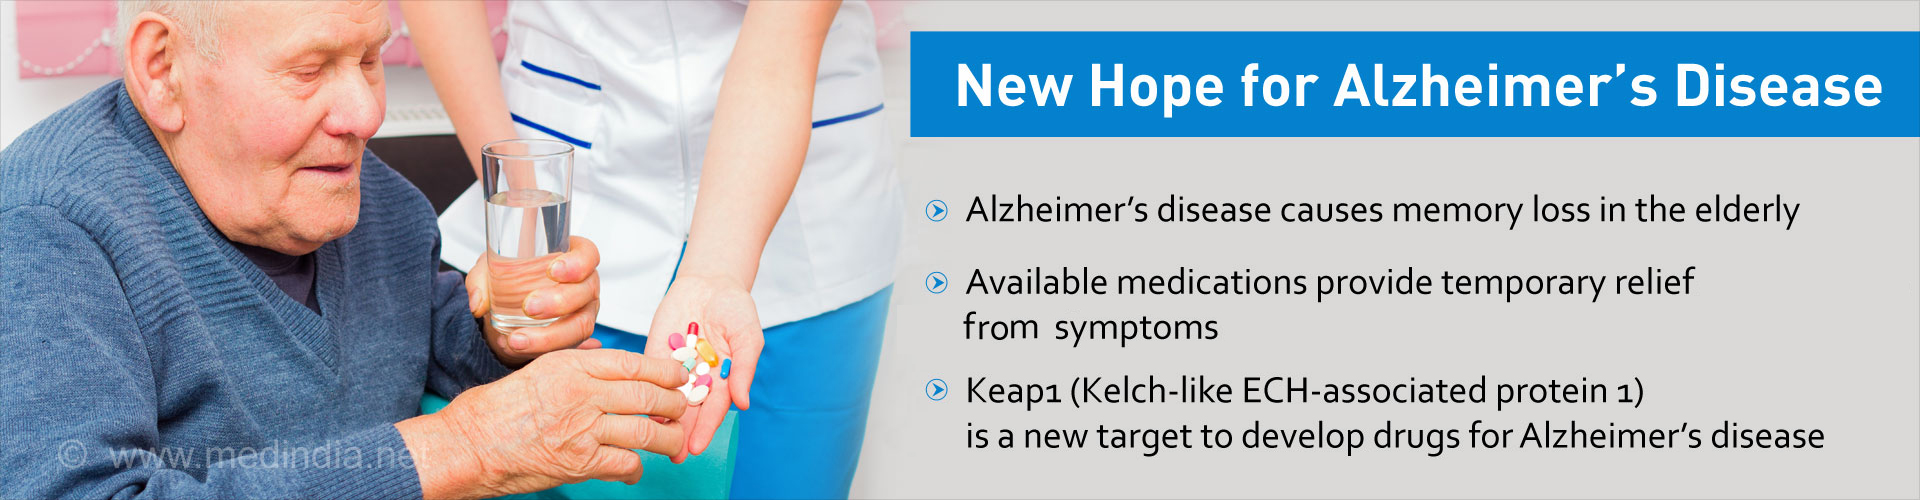 Potential New Target for Alzheimer's Disease Treatment